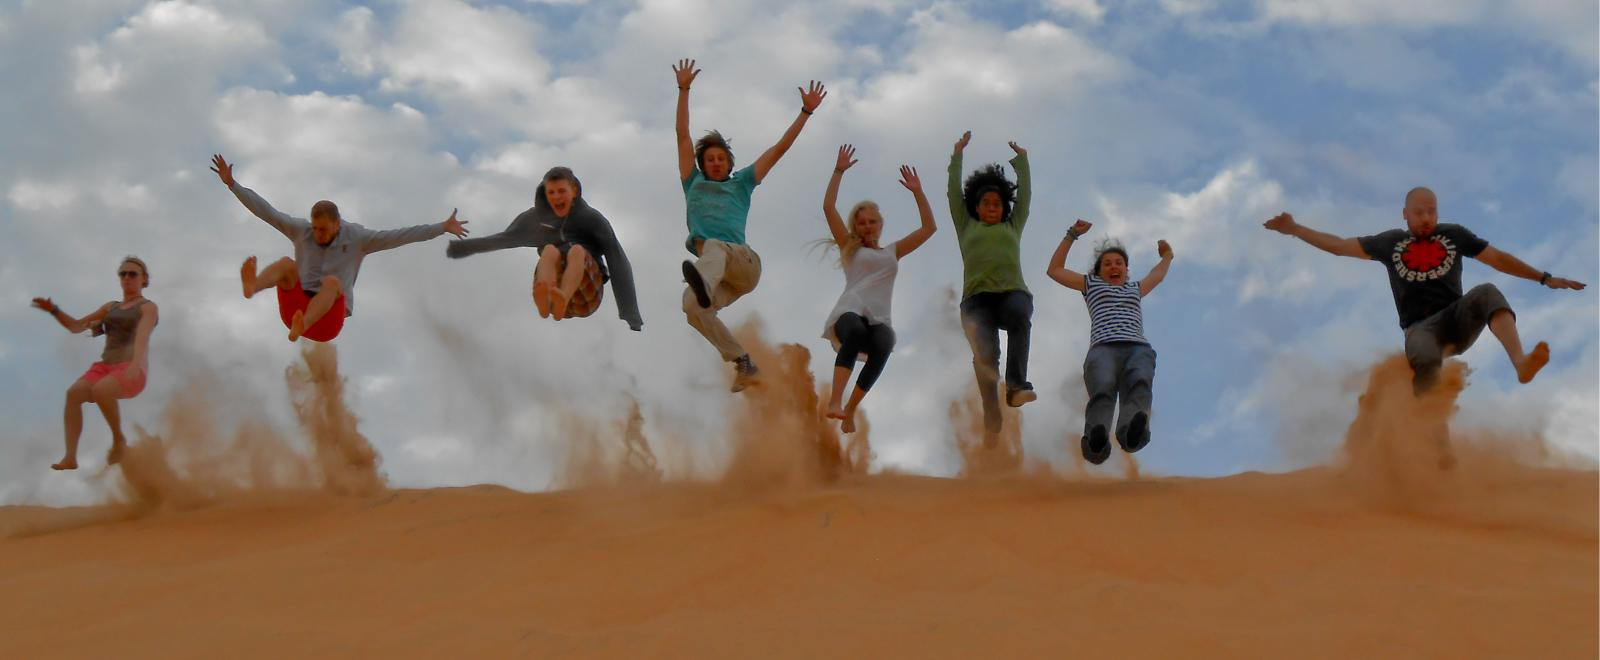 A group of volunteers jumping on a sand dune in Senegal